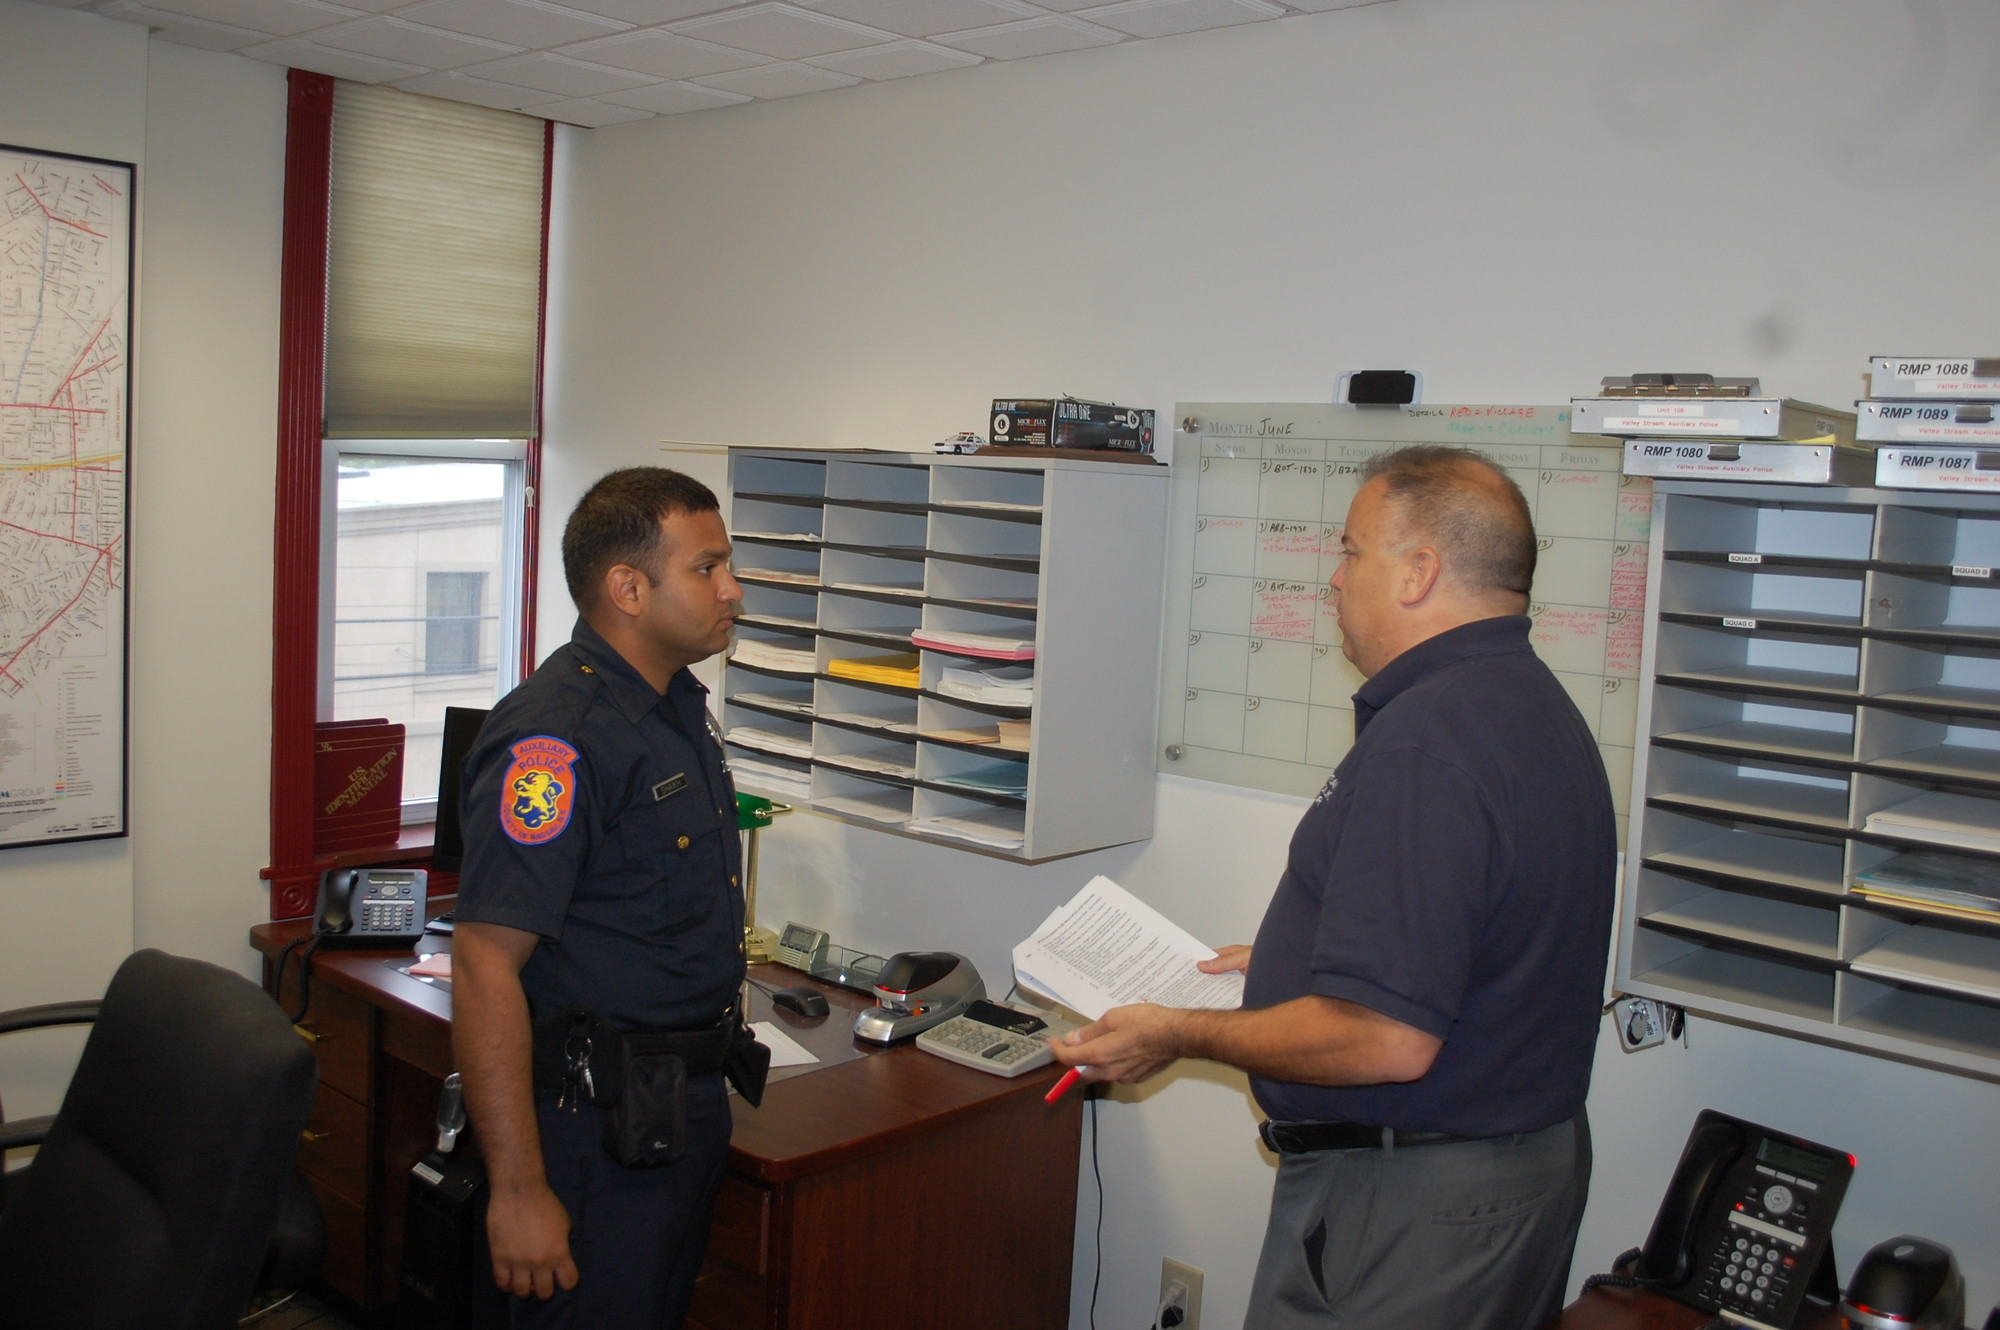 Auxiliary Police Officer Mohammed Shaikh, left, and Commander Richard Vela look over the schedule in their top floor office.